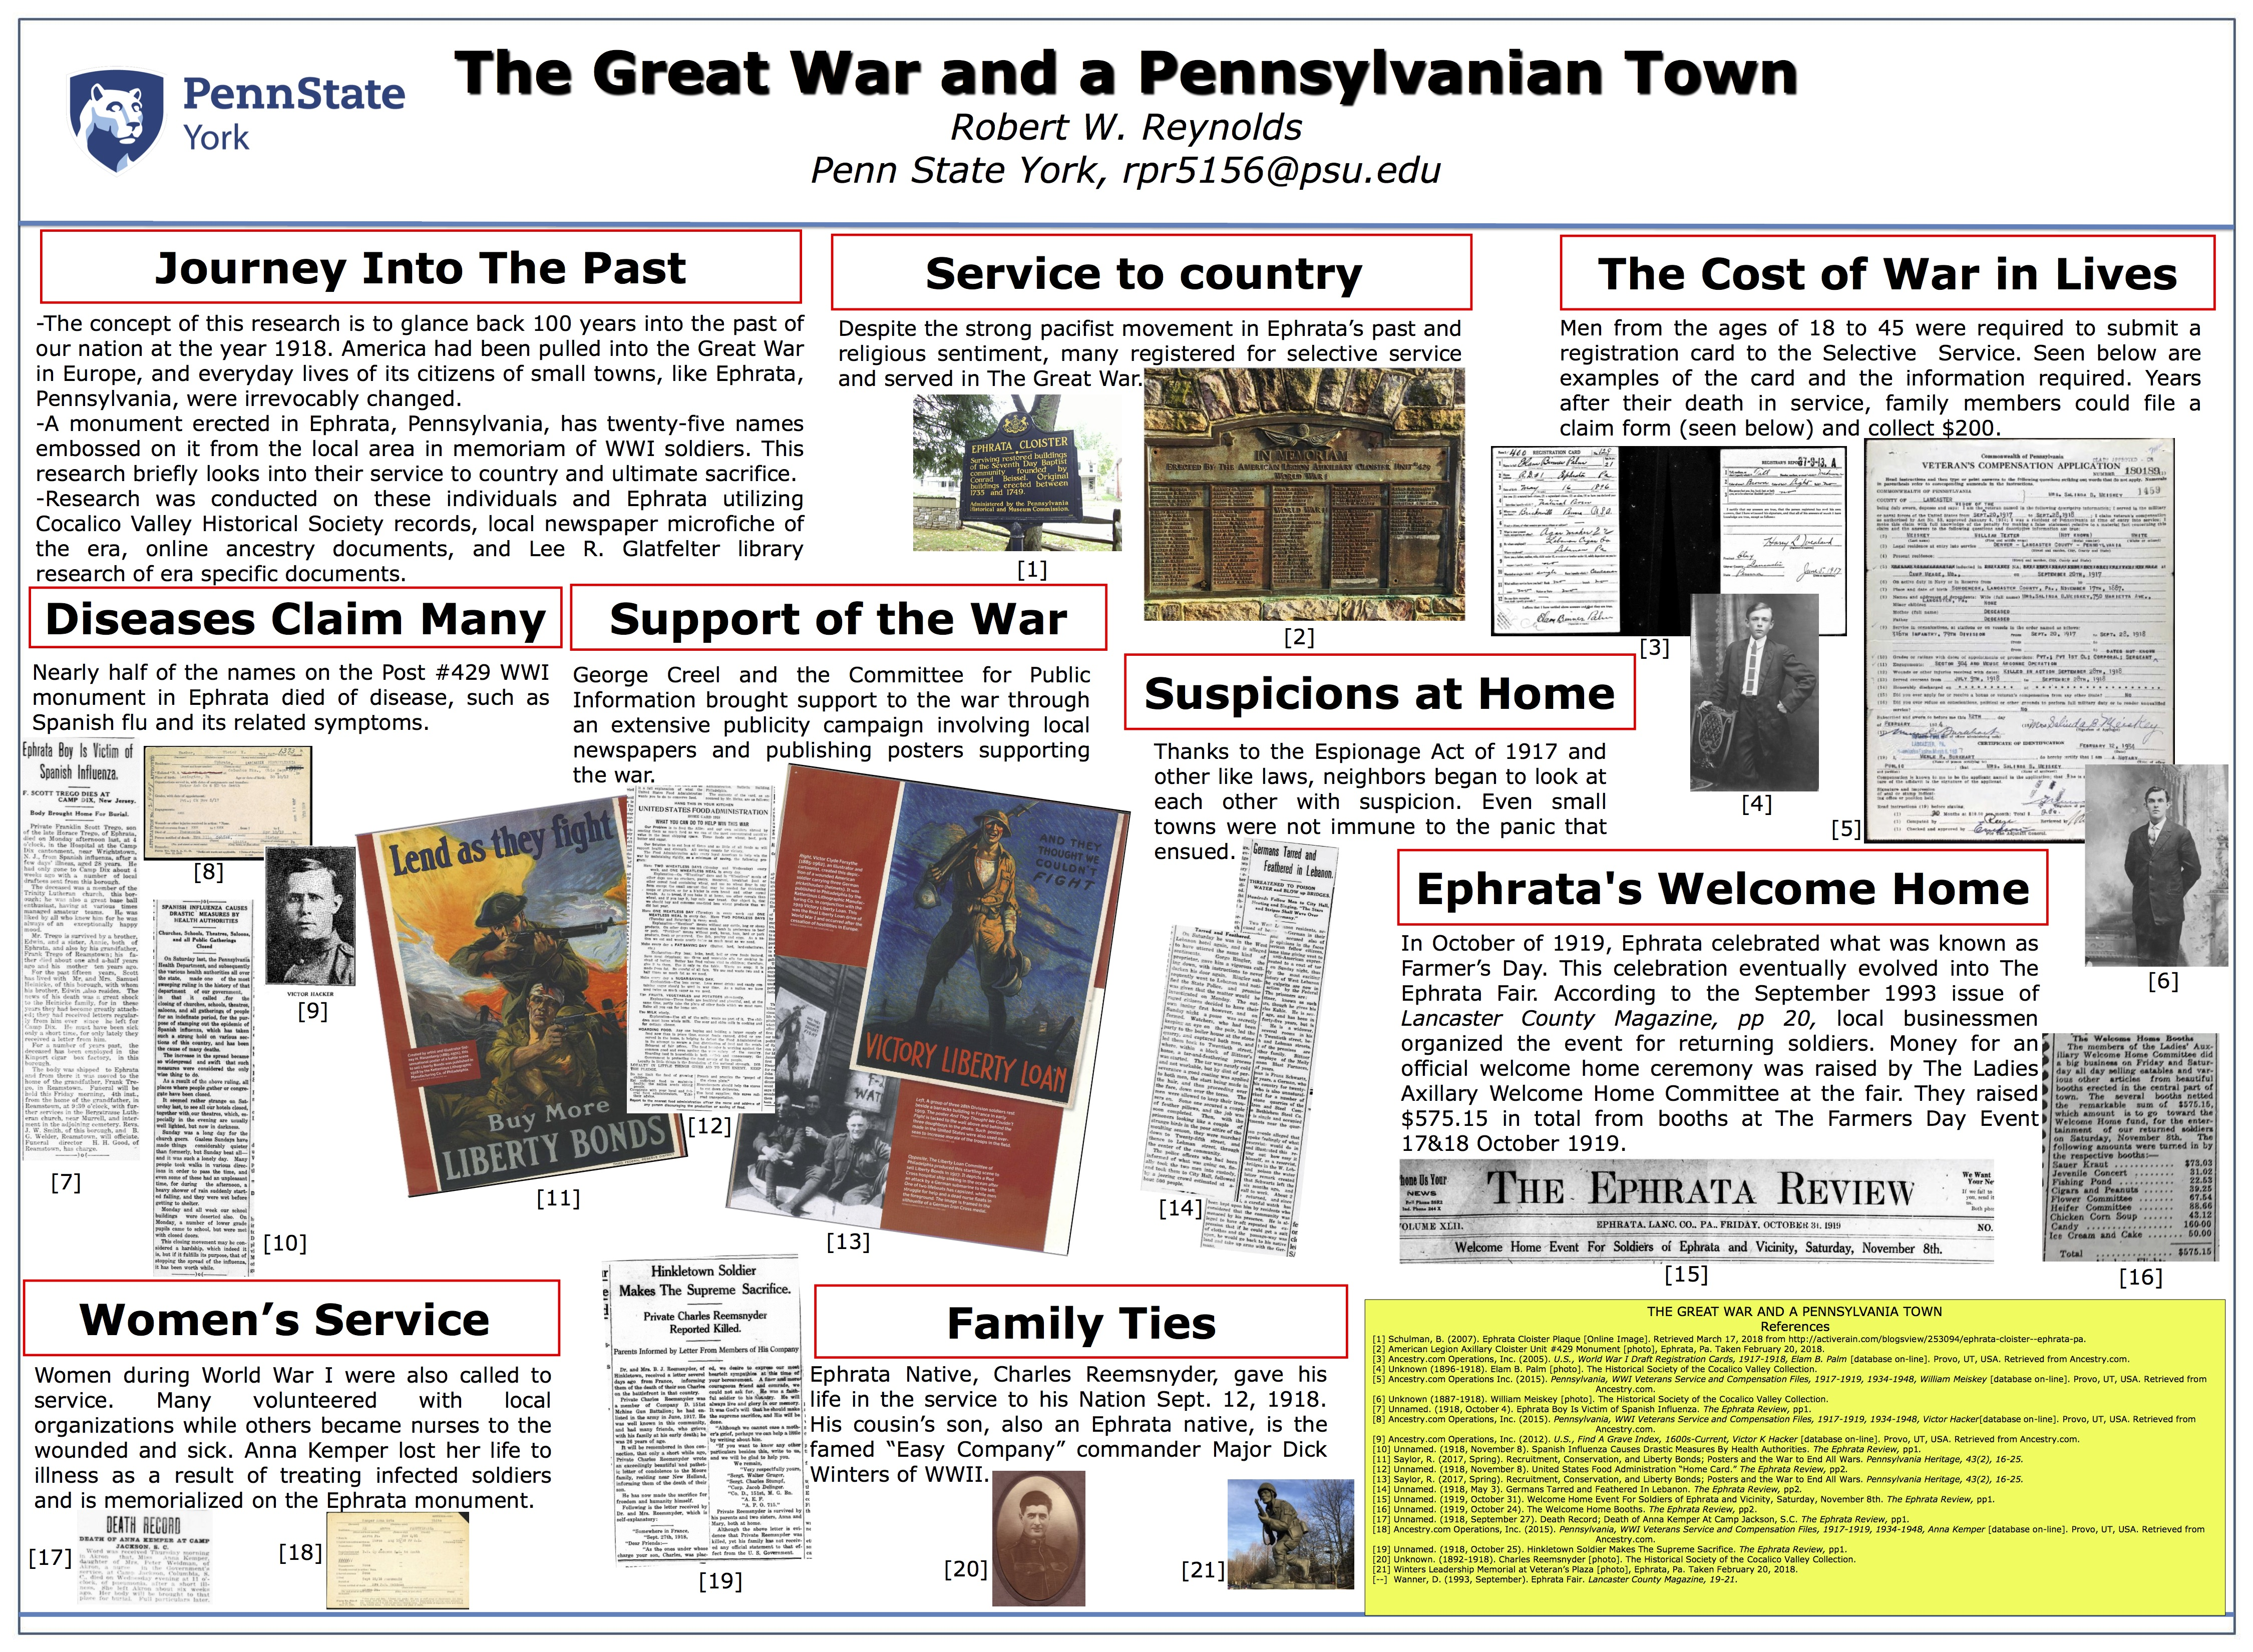 Student research poster of The Great War and a Pennslyvanian Town